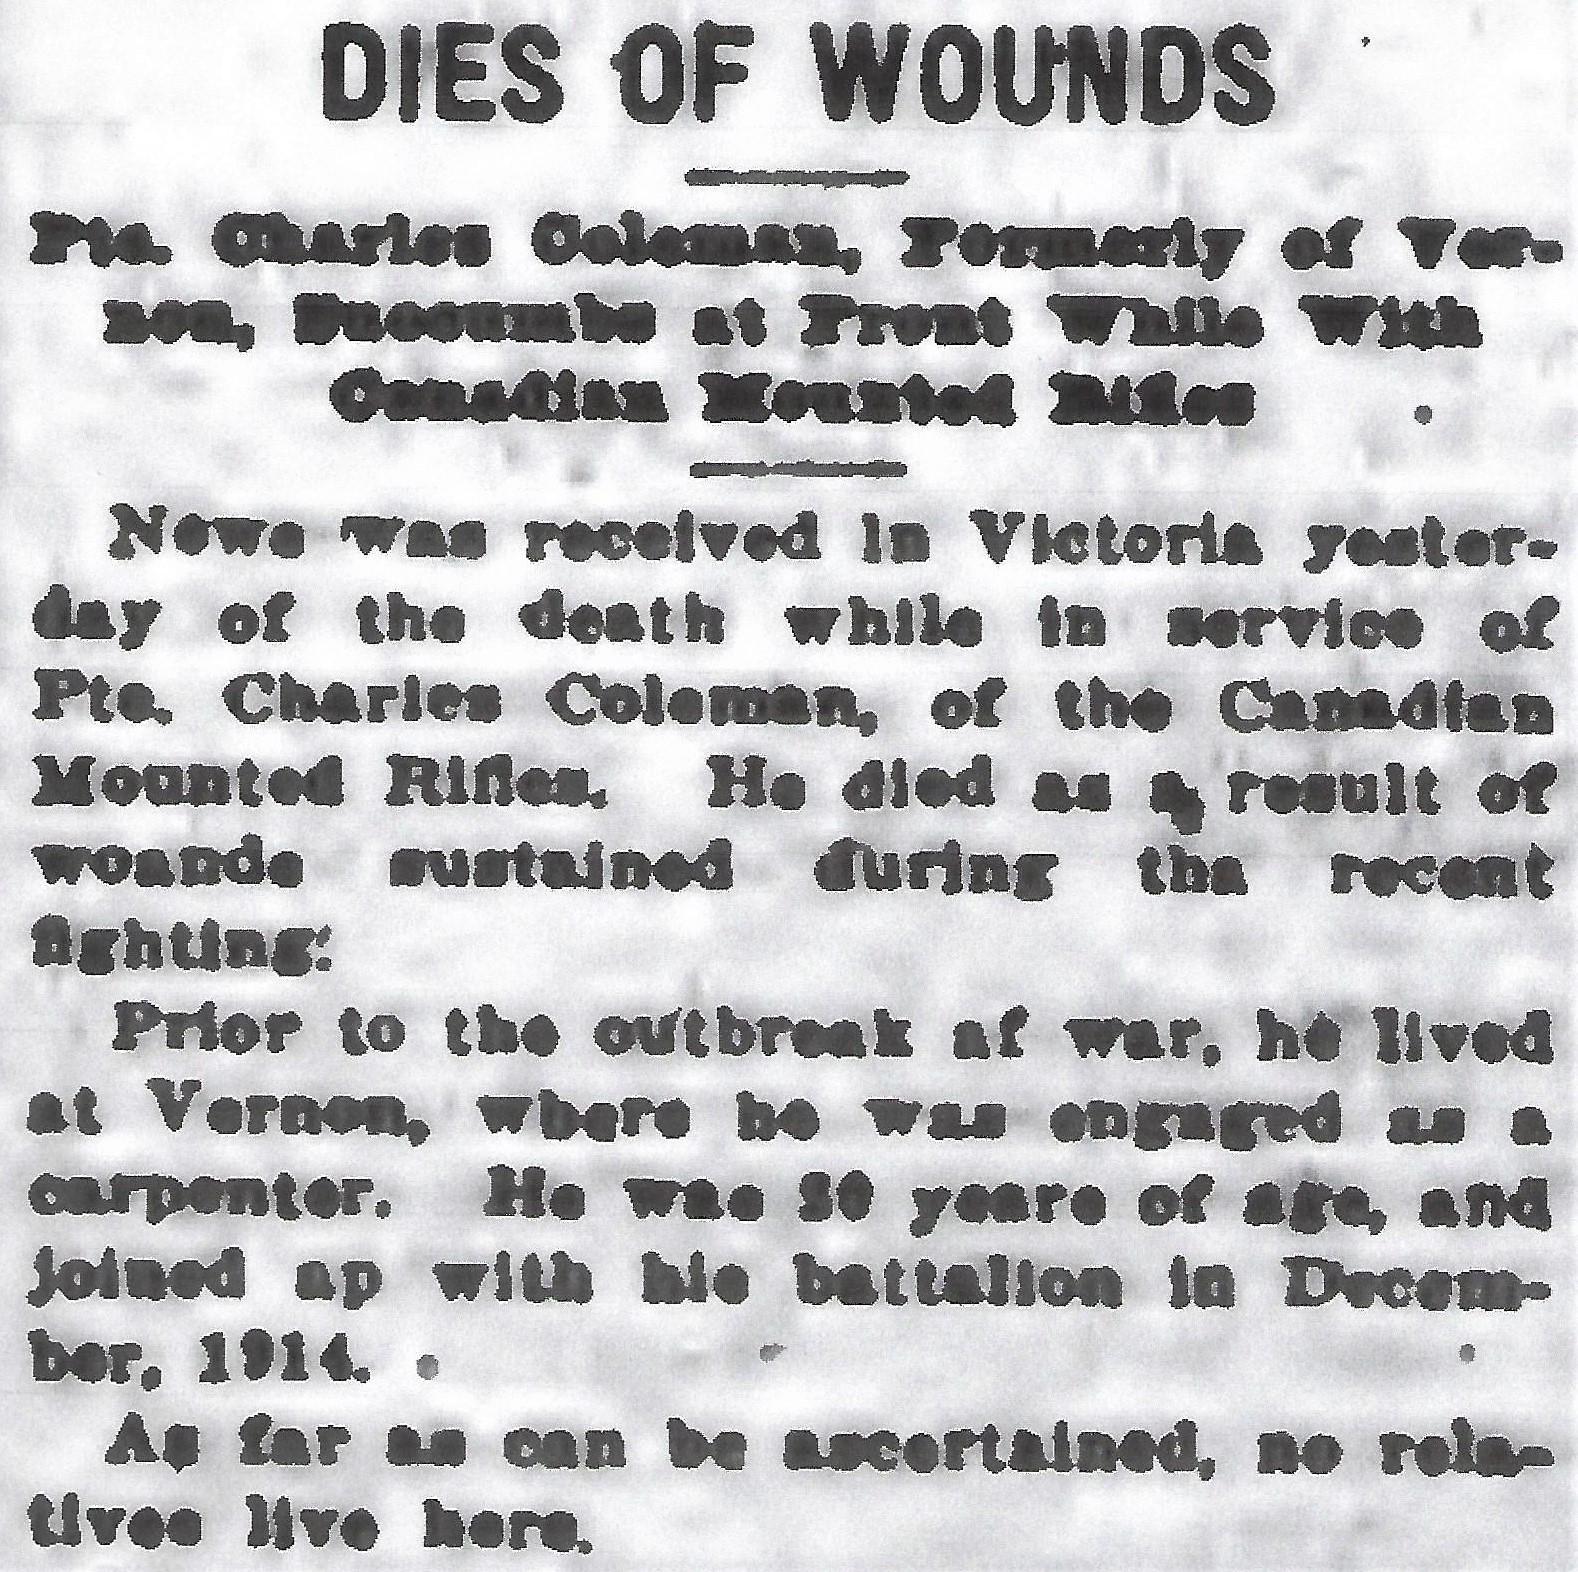 Newspaper clipping– From the Daily Colonist of April 16, 1916